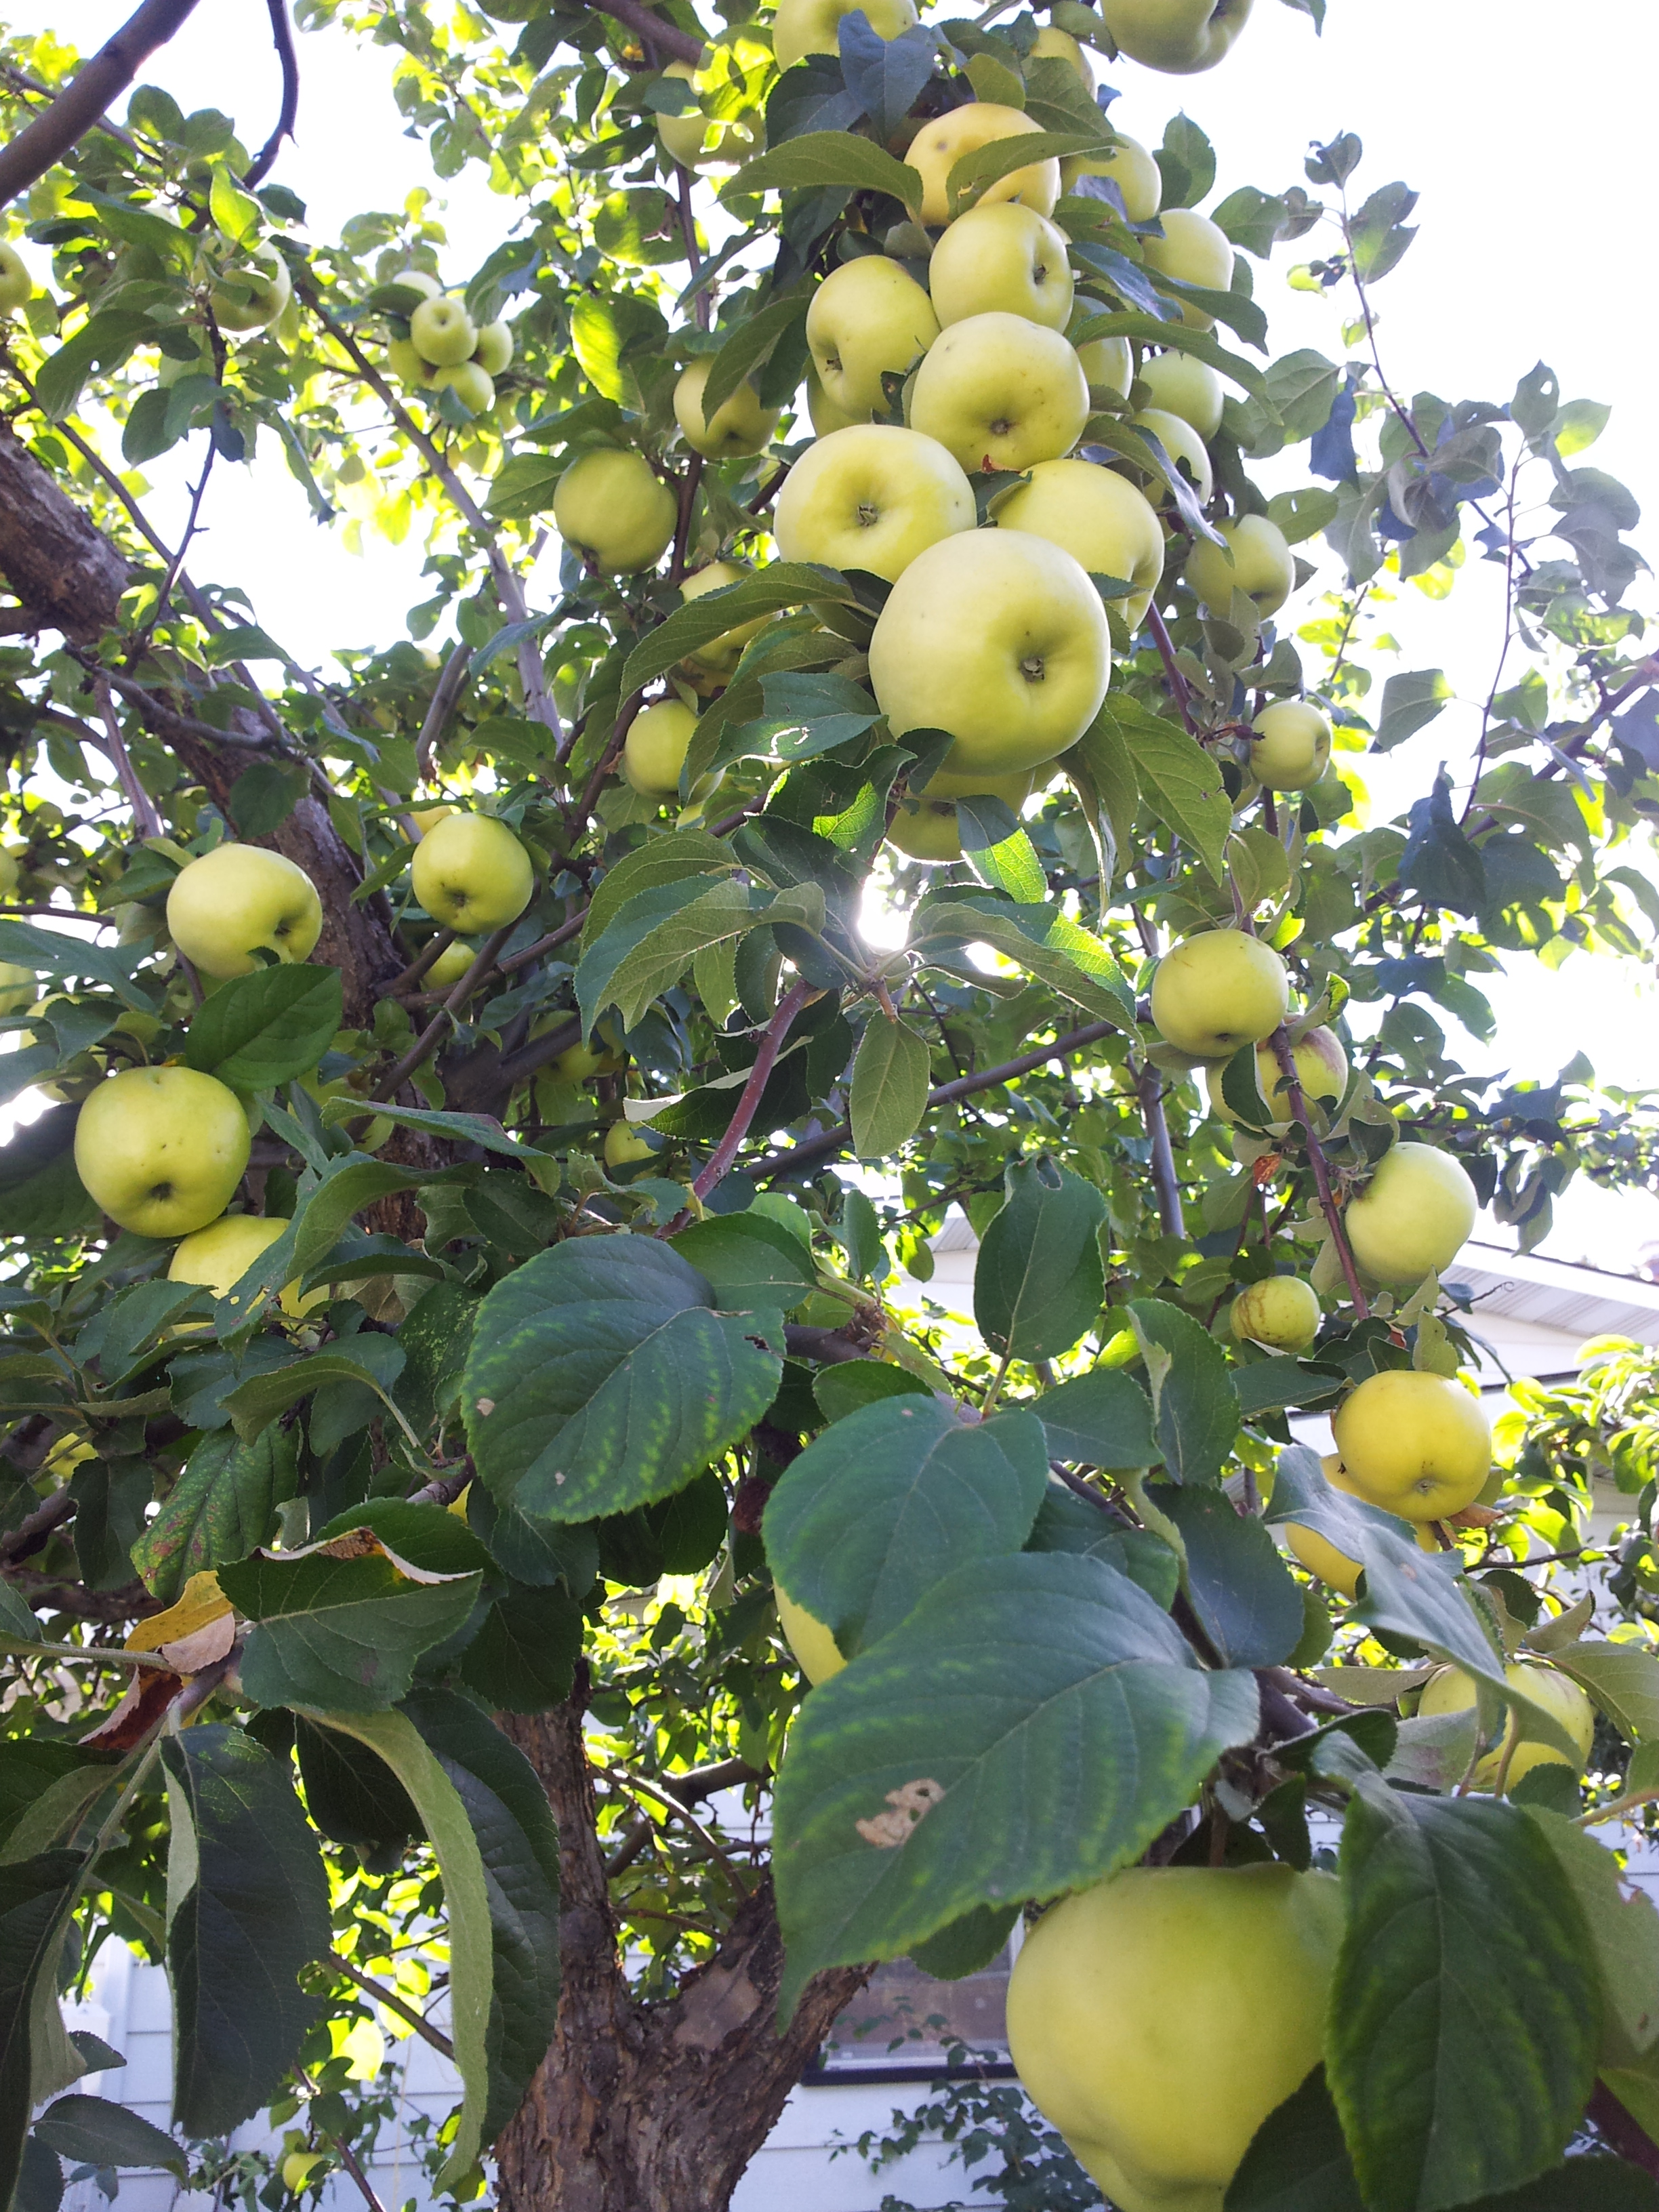 A loaded apple tree